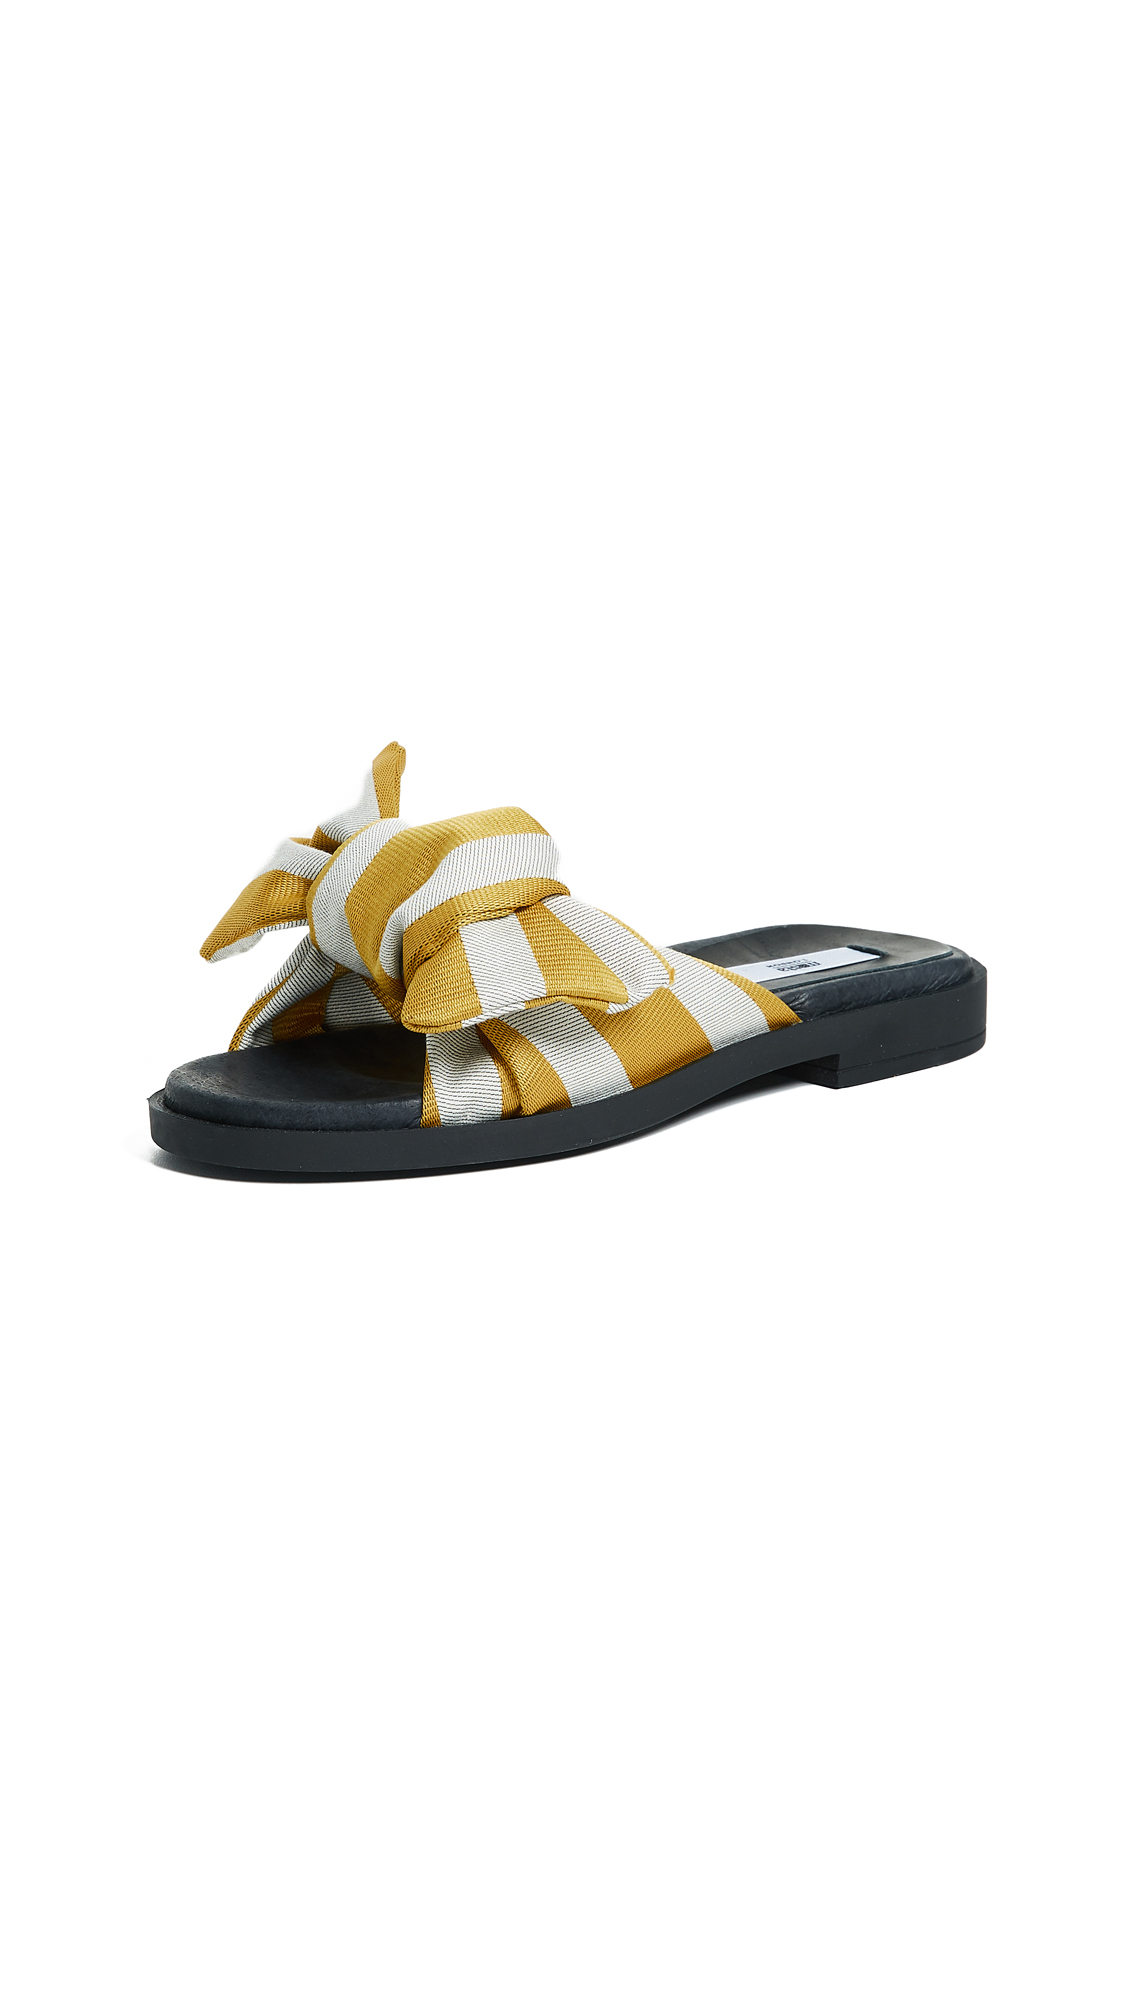 Miista Valerie Bow Sandals - Egg Stripe